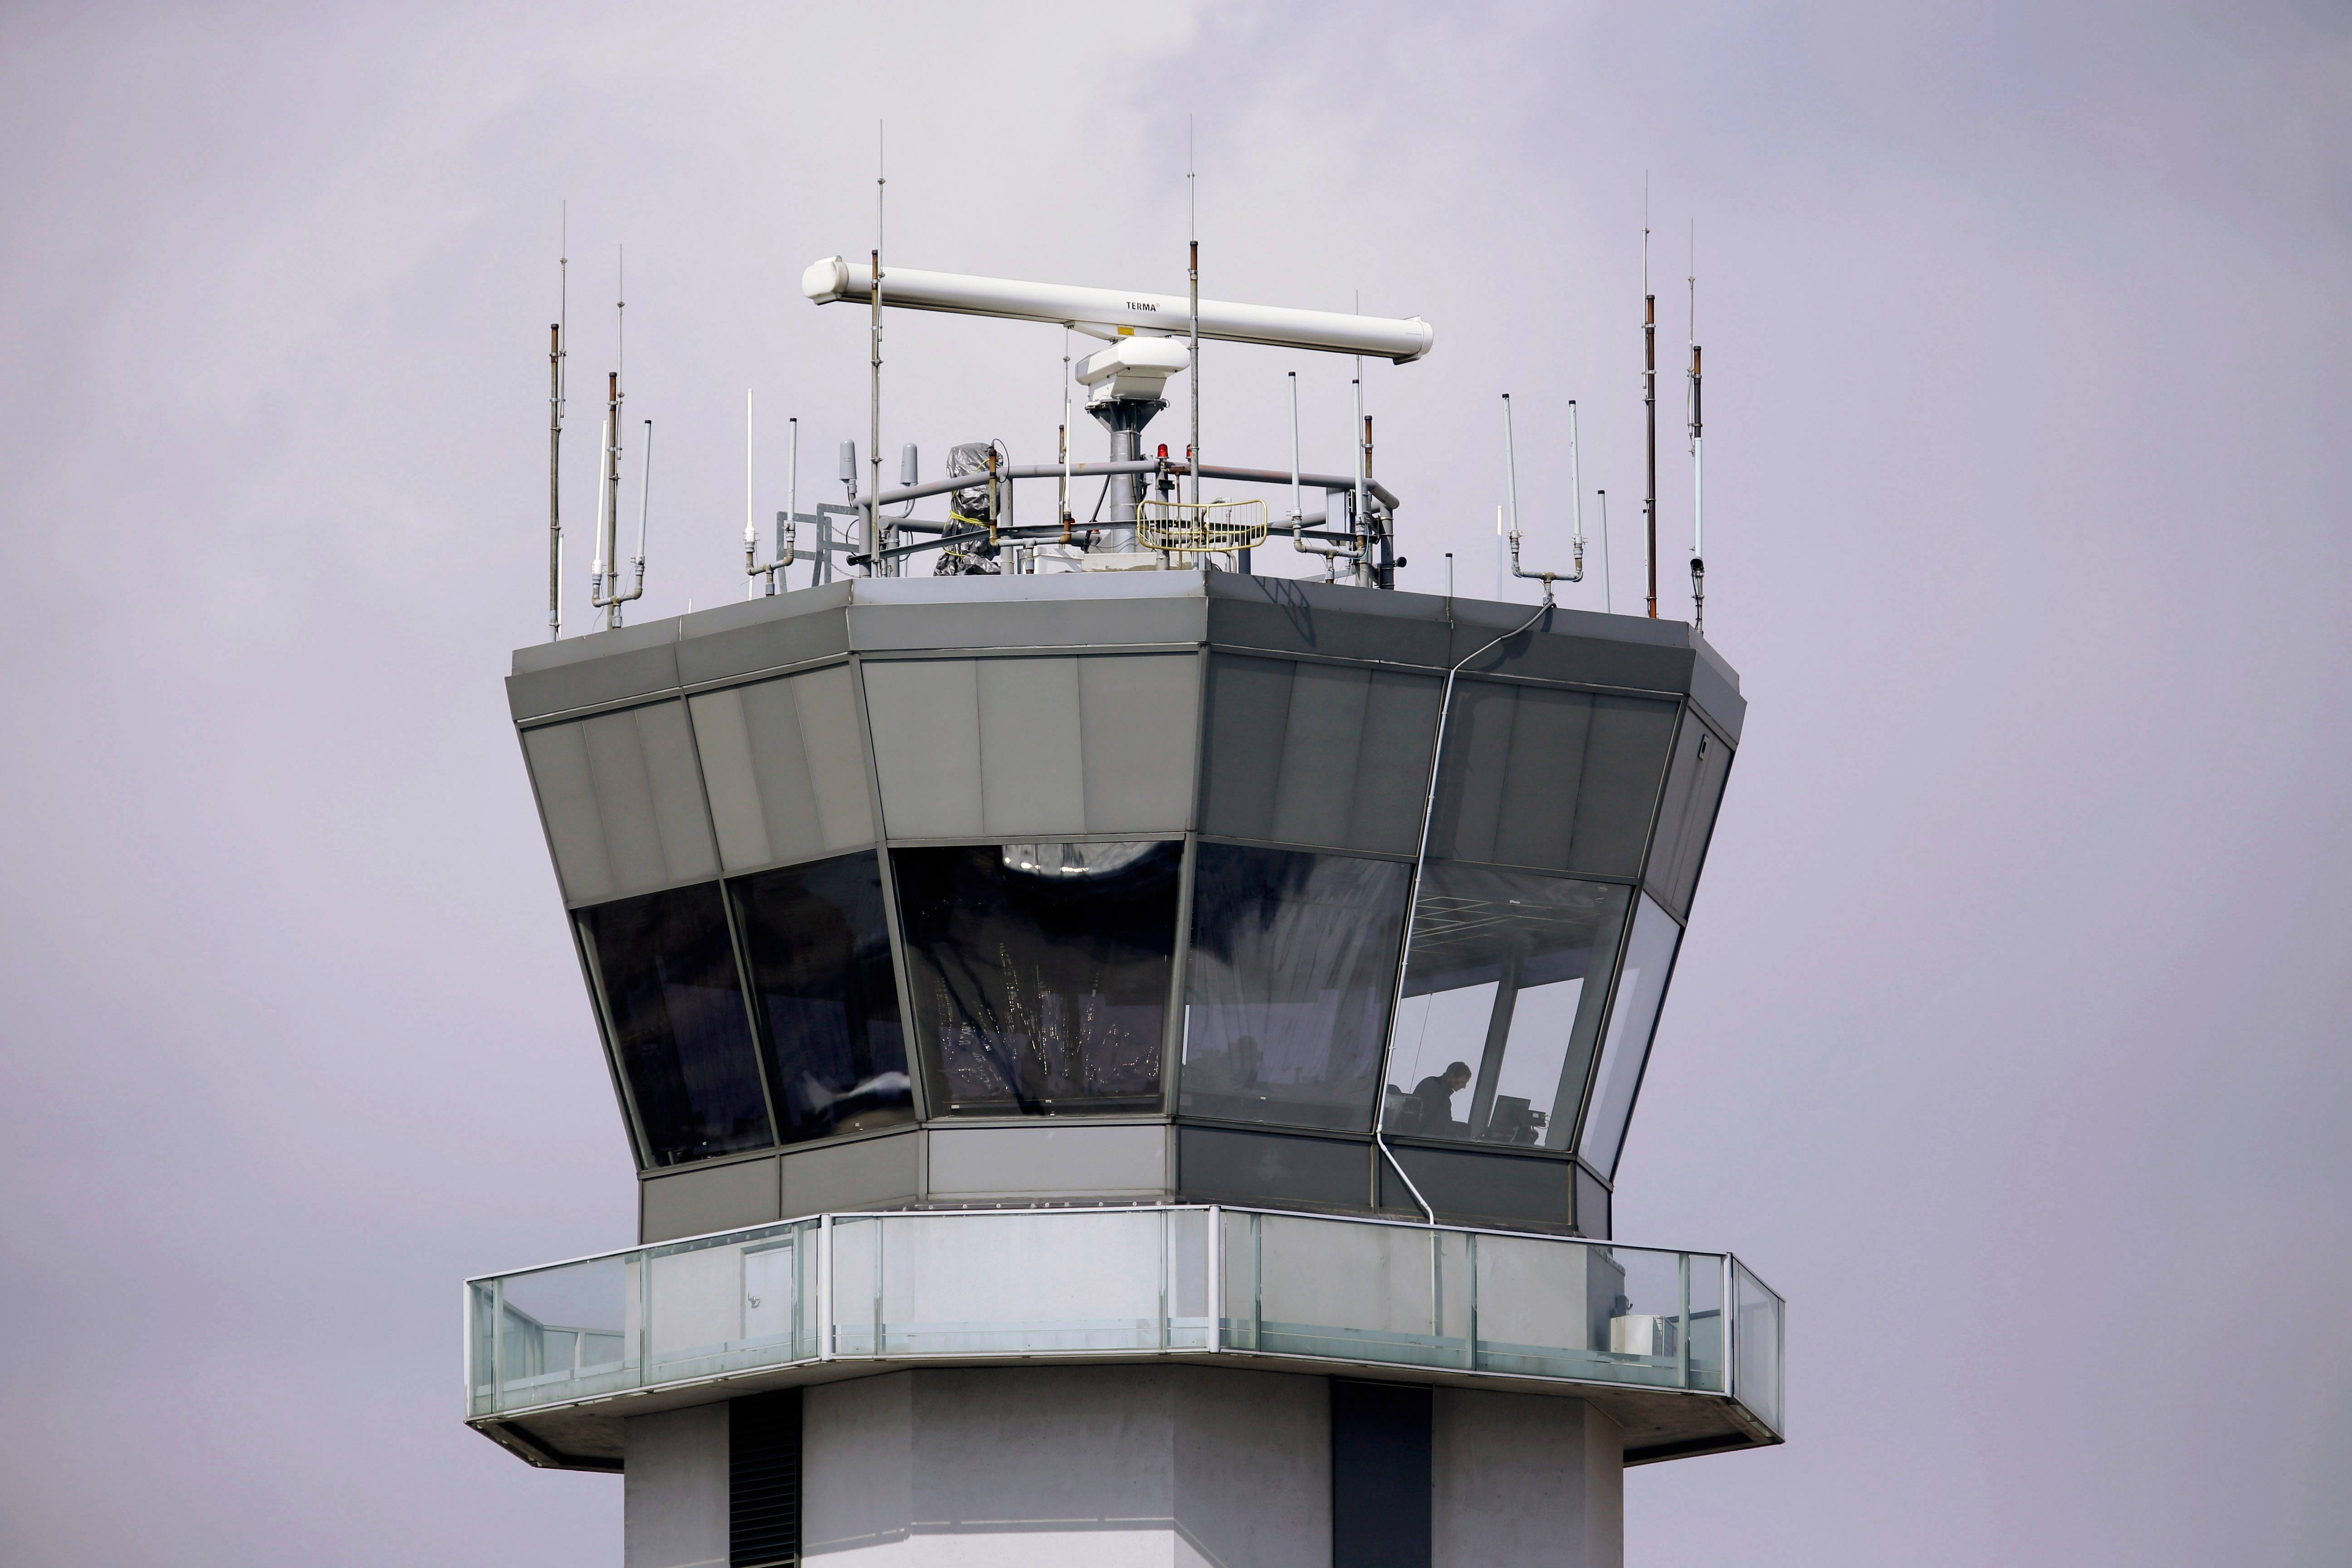 The air traffic control tower at Chicago's Midway International Airport.